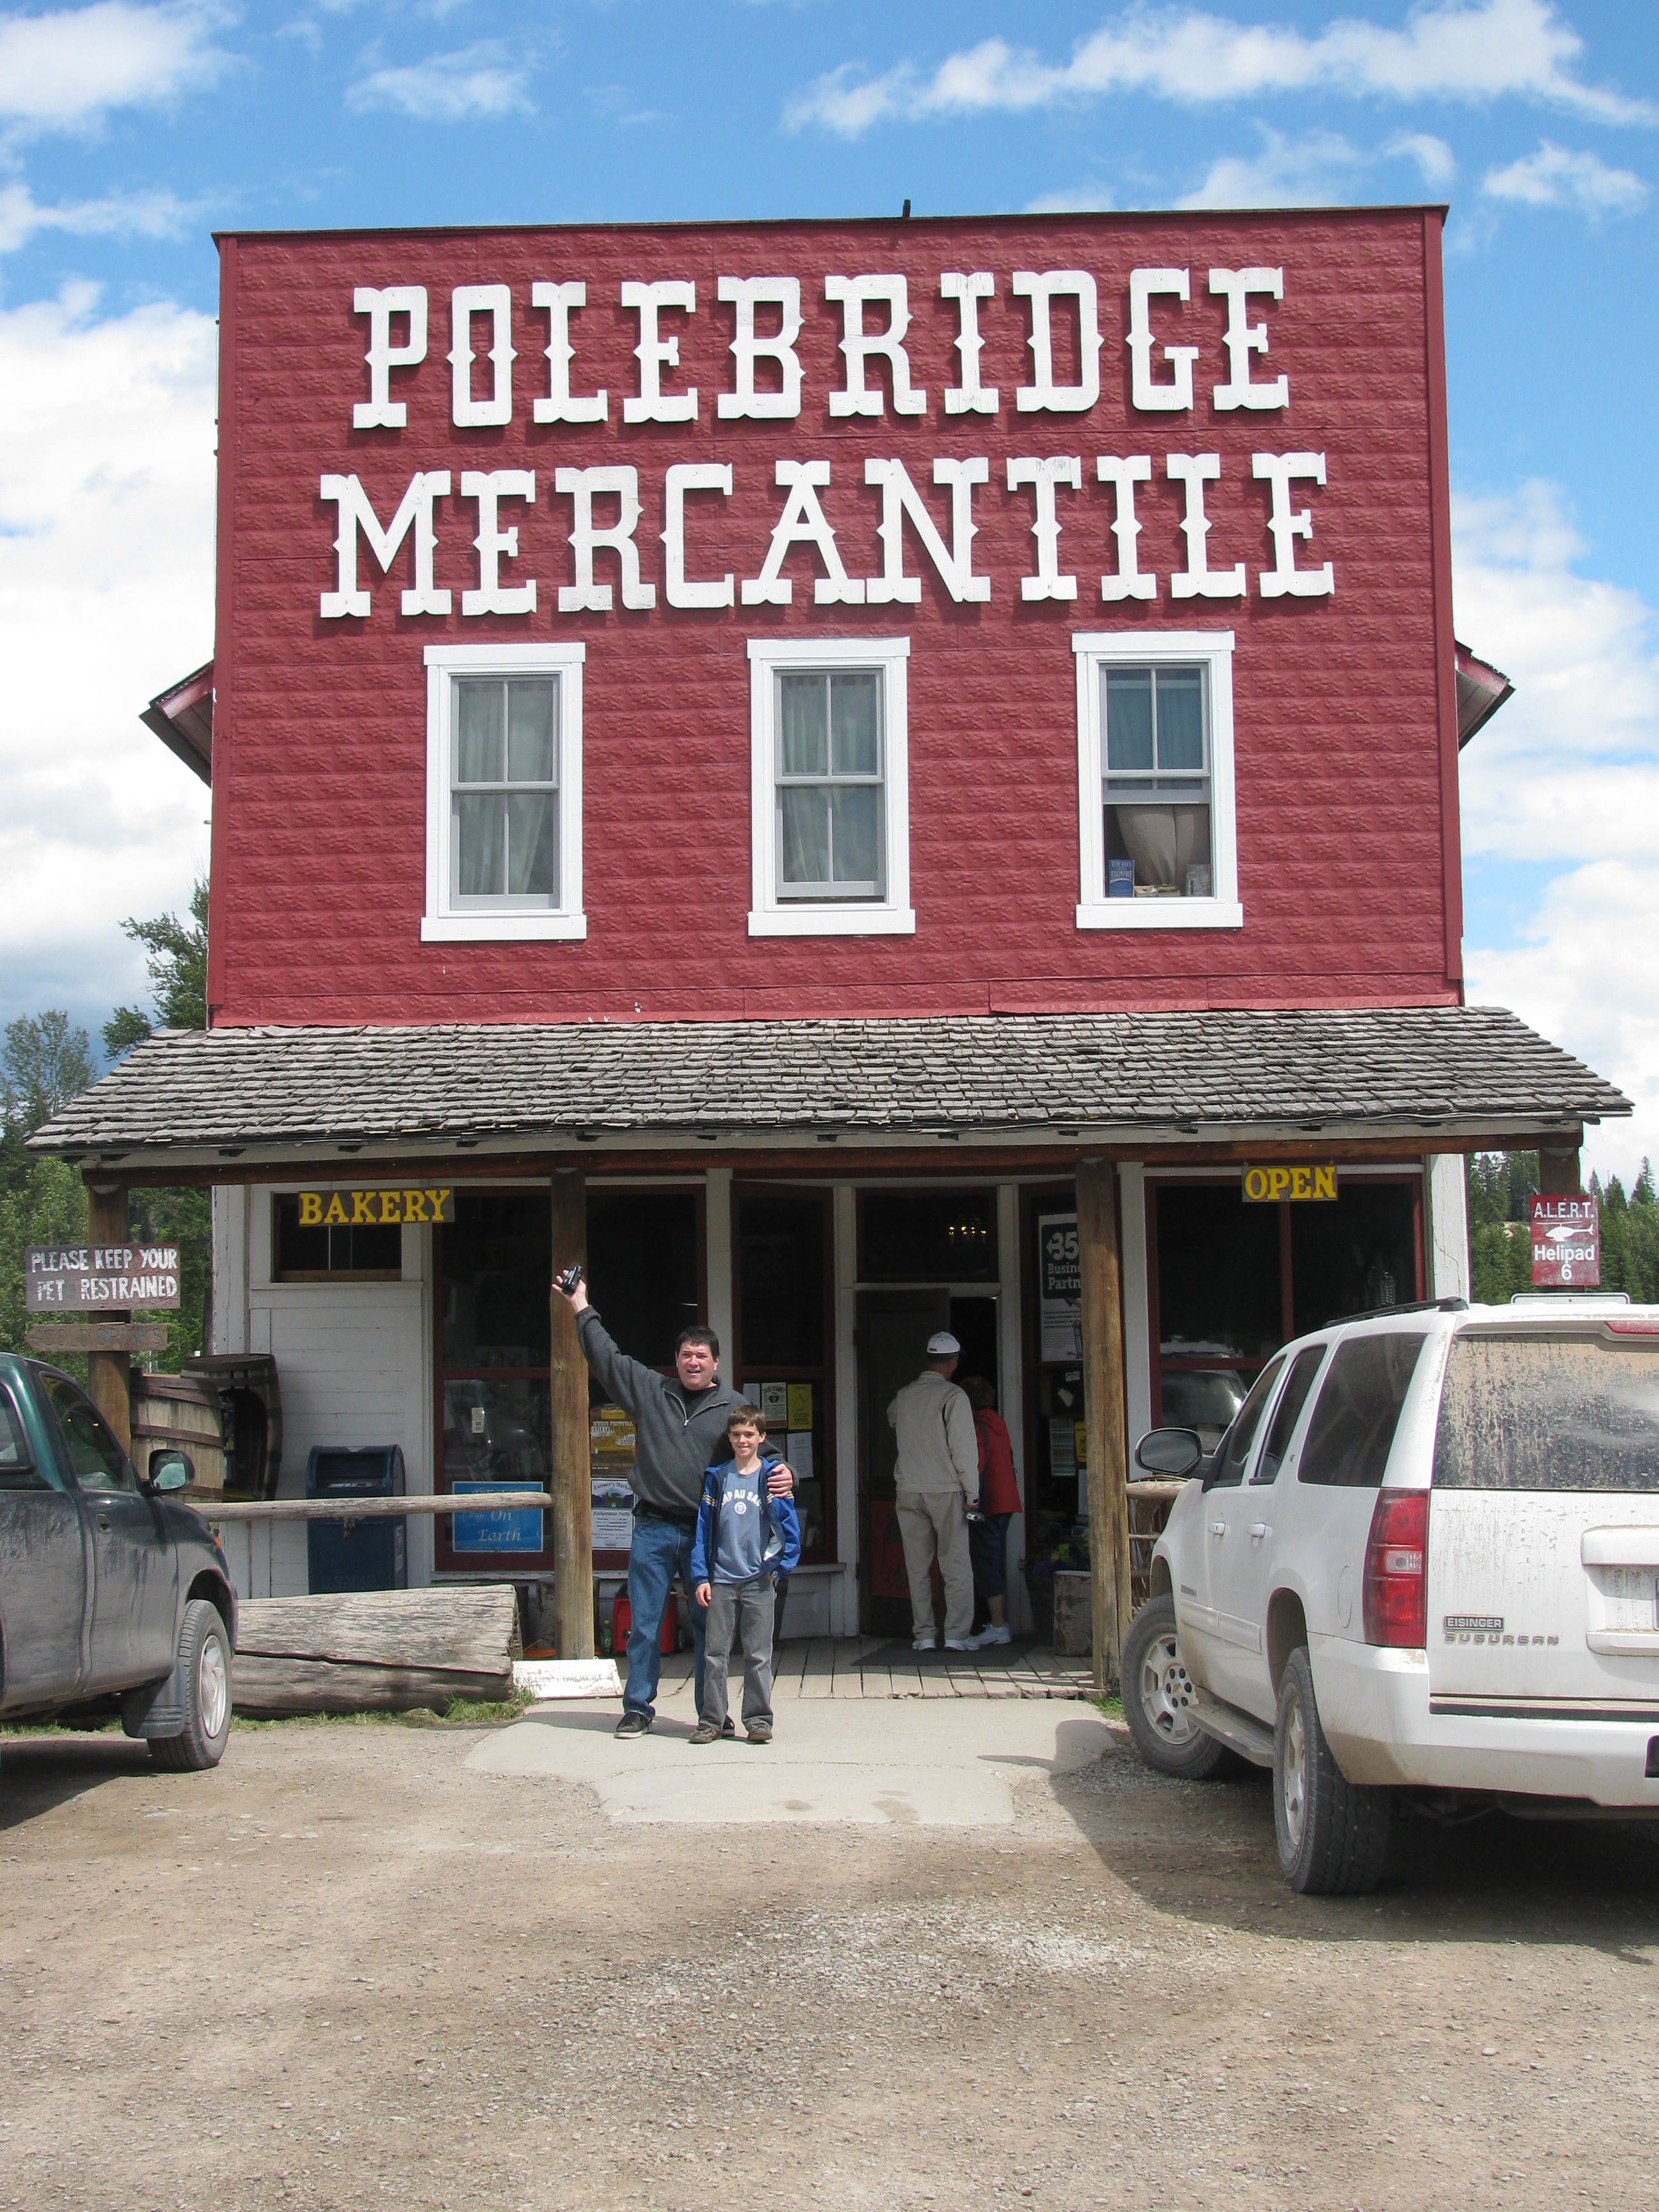 You'll find the Polebridge Mercantile a short drive from Little Peace of Heaven!